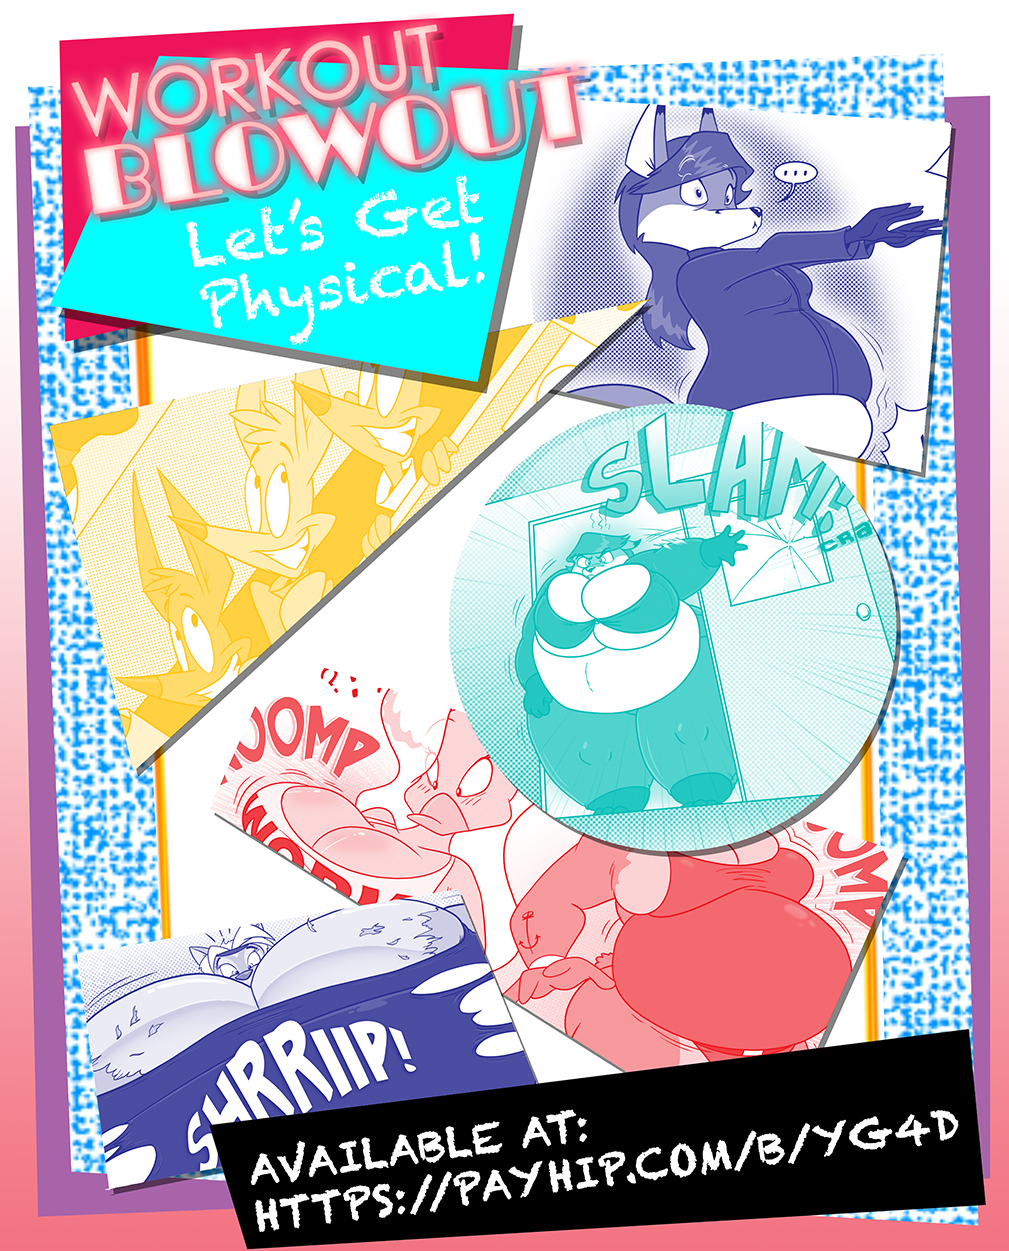 Issue 4: Workout Blow Out is now Available by GreyOfPTA